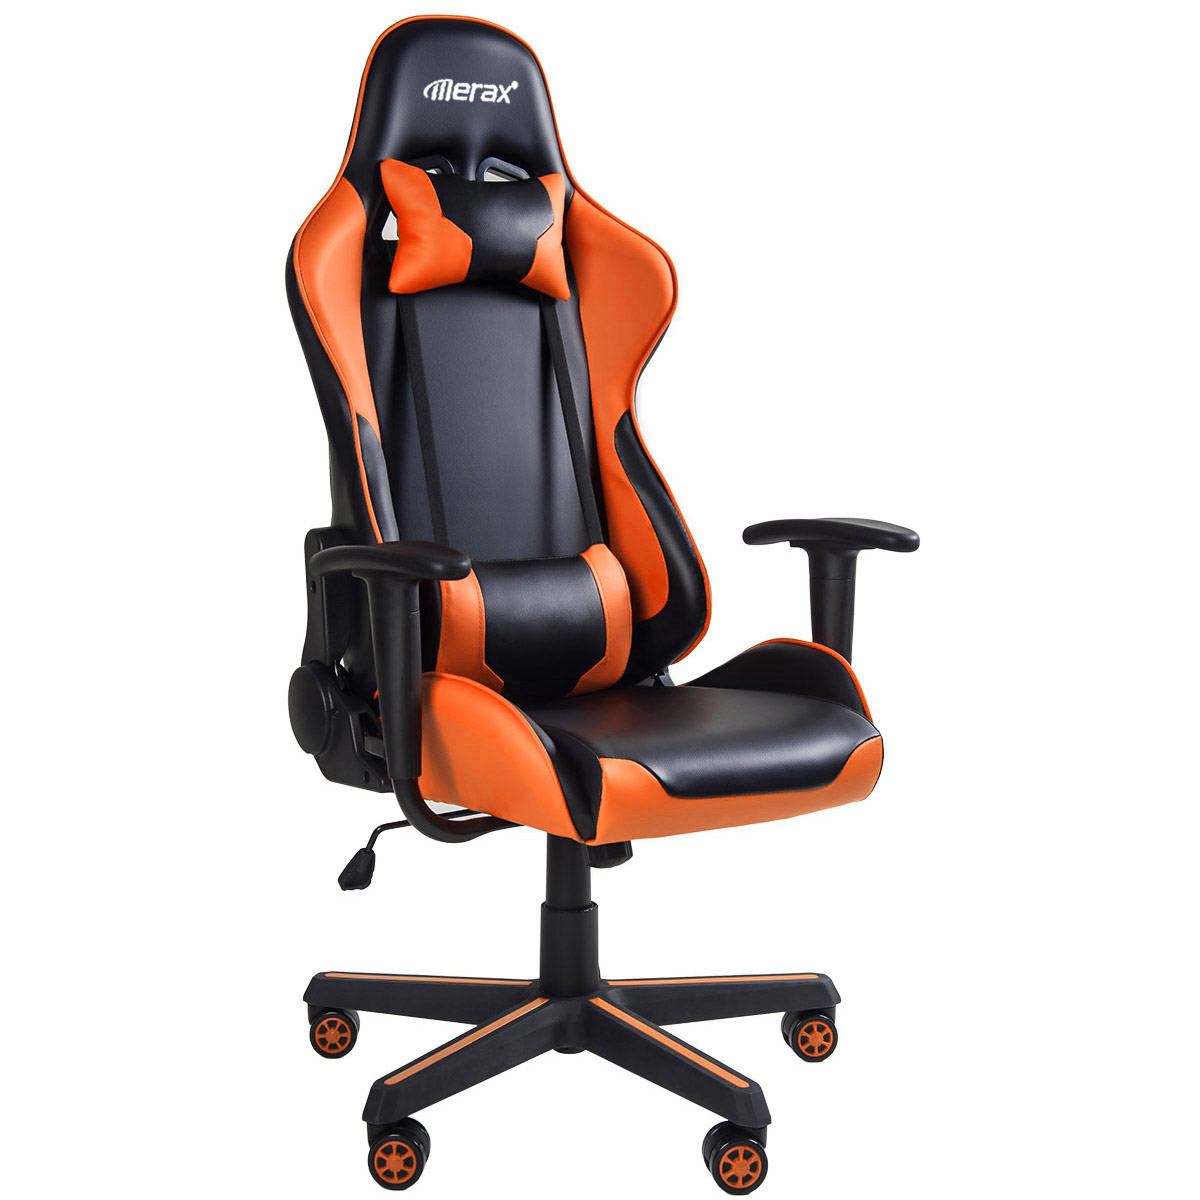 Quality Orange Office Boss Chair Ergonomic Computer Gaming Chair Internet Cafe Seat Household Reclining Chair PU Leather Chair